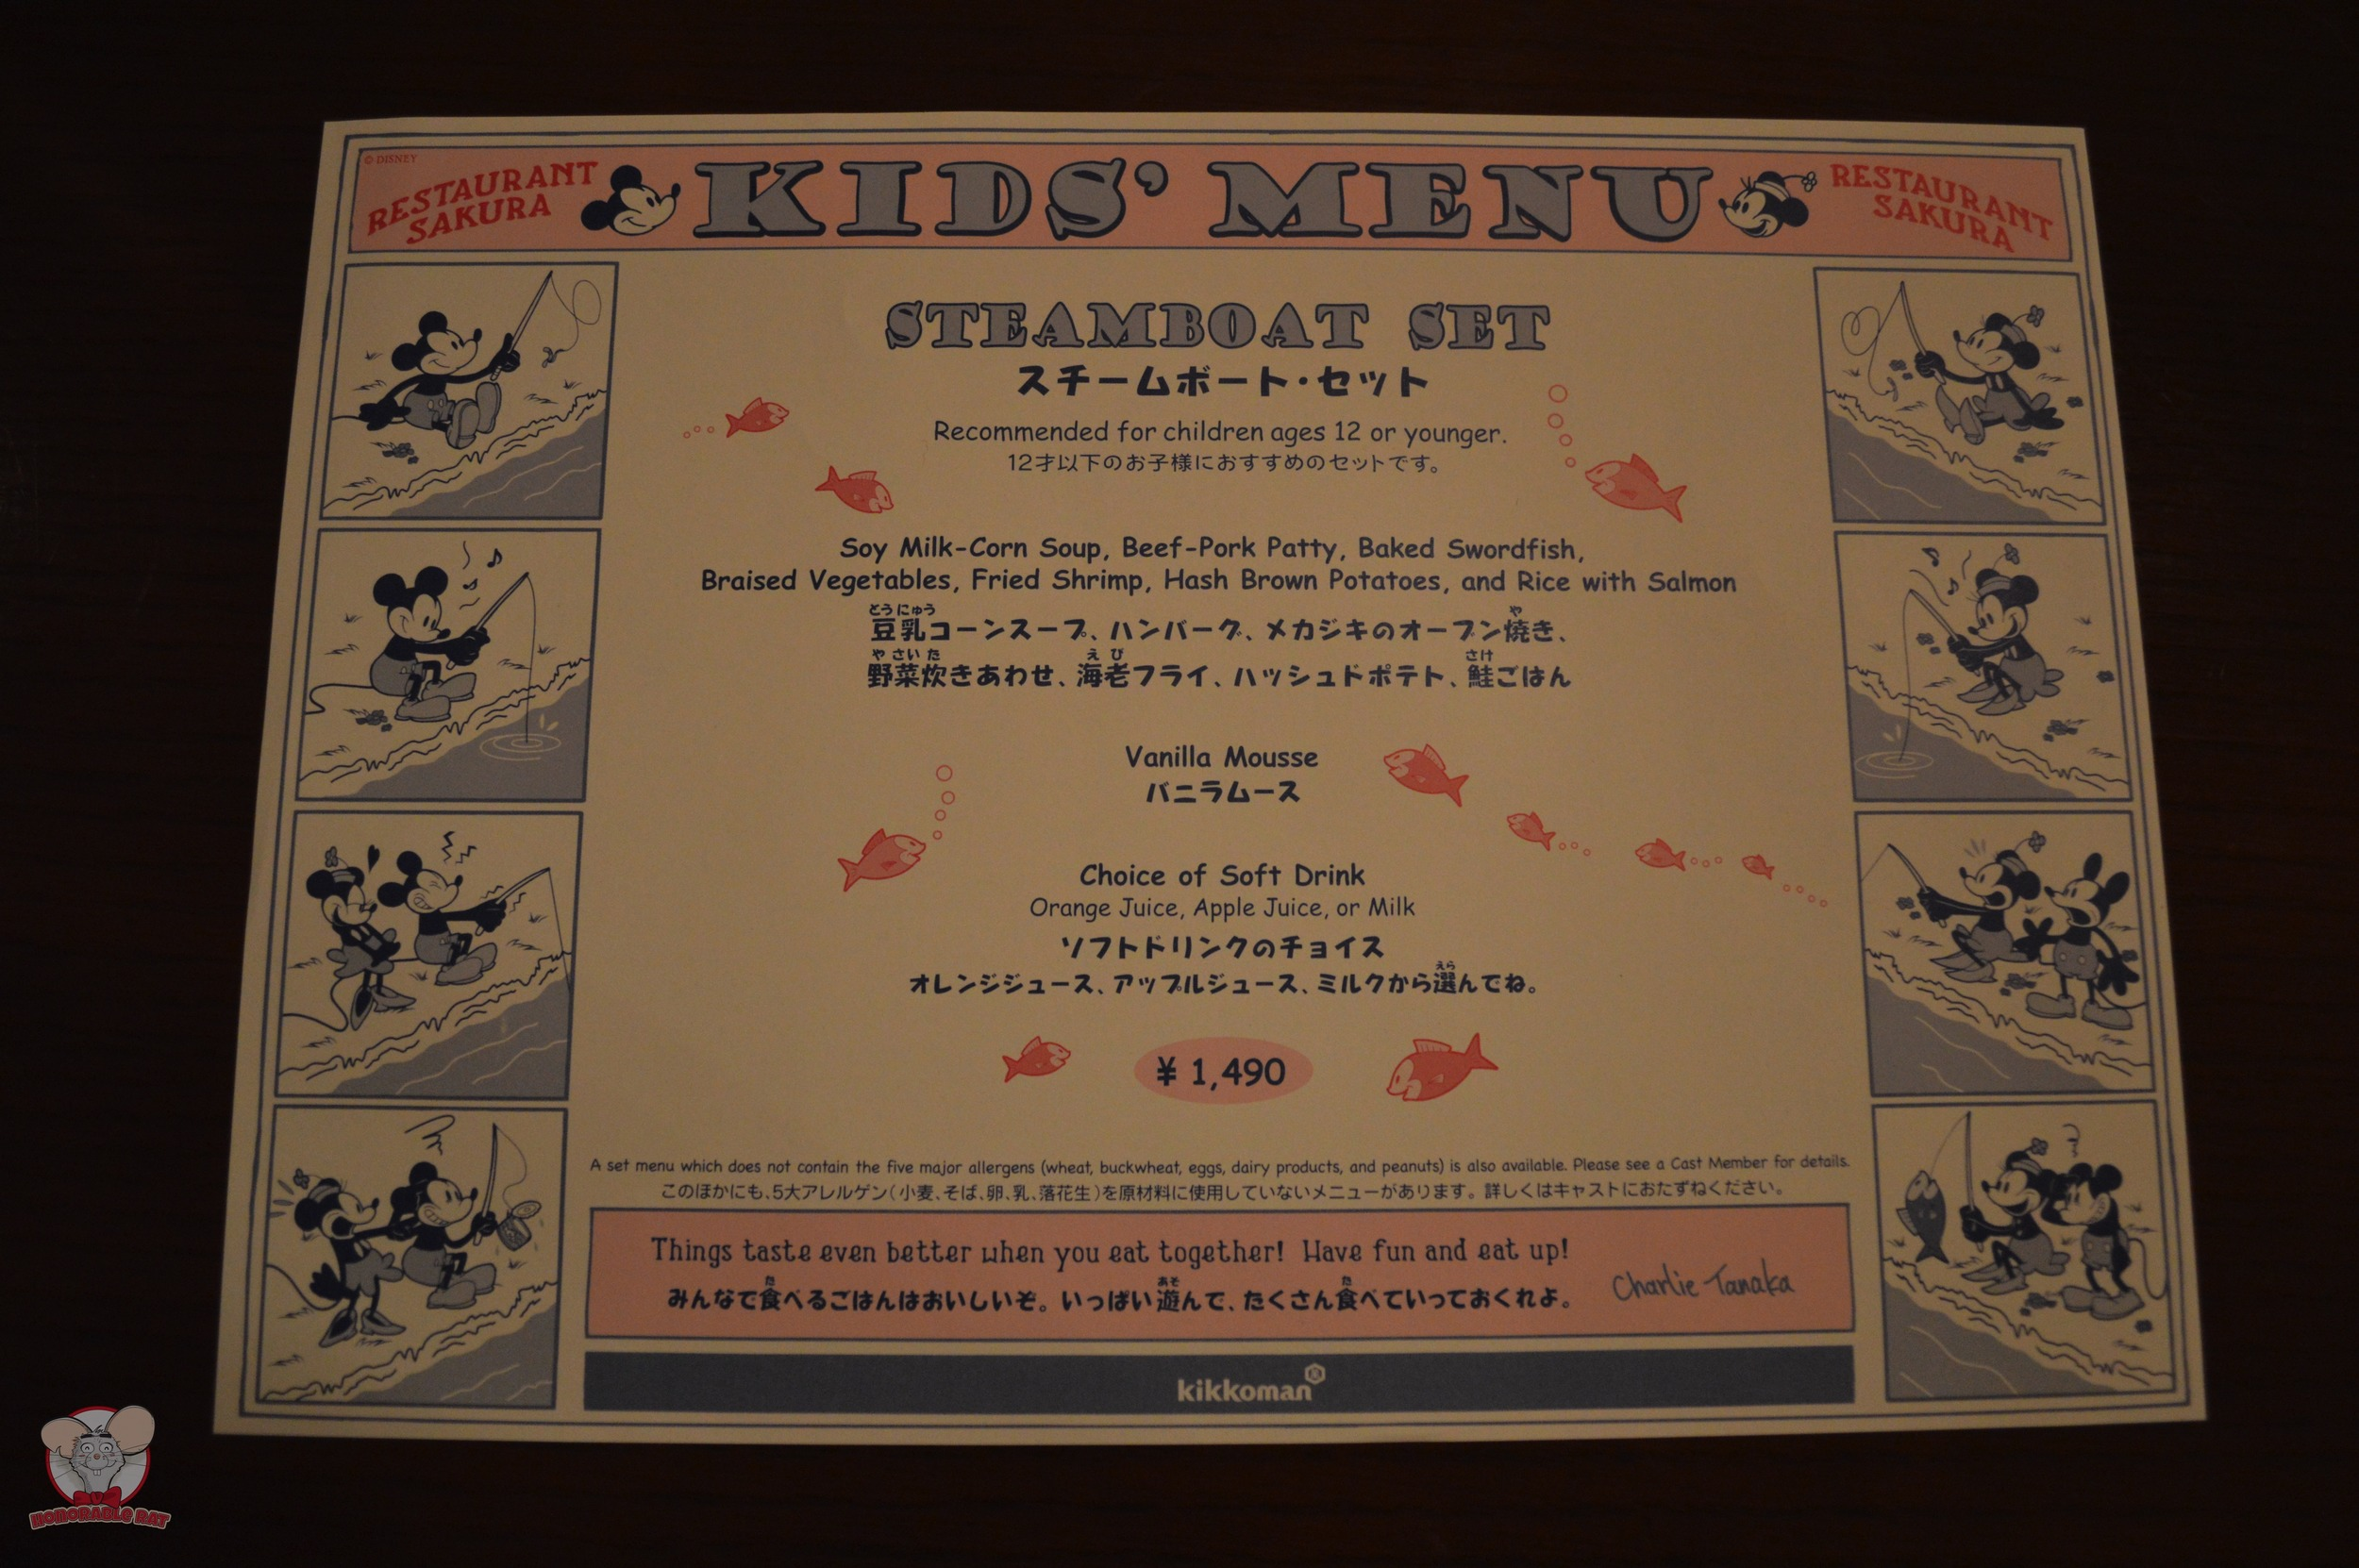 Steamboat Set (Kid's Menu)